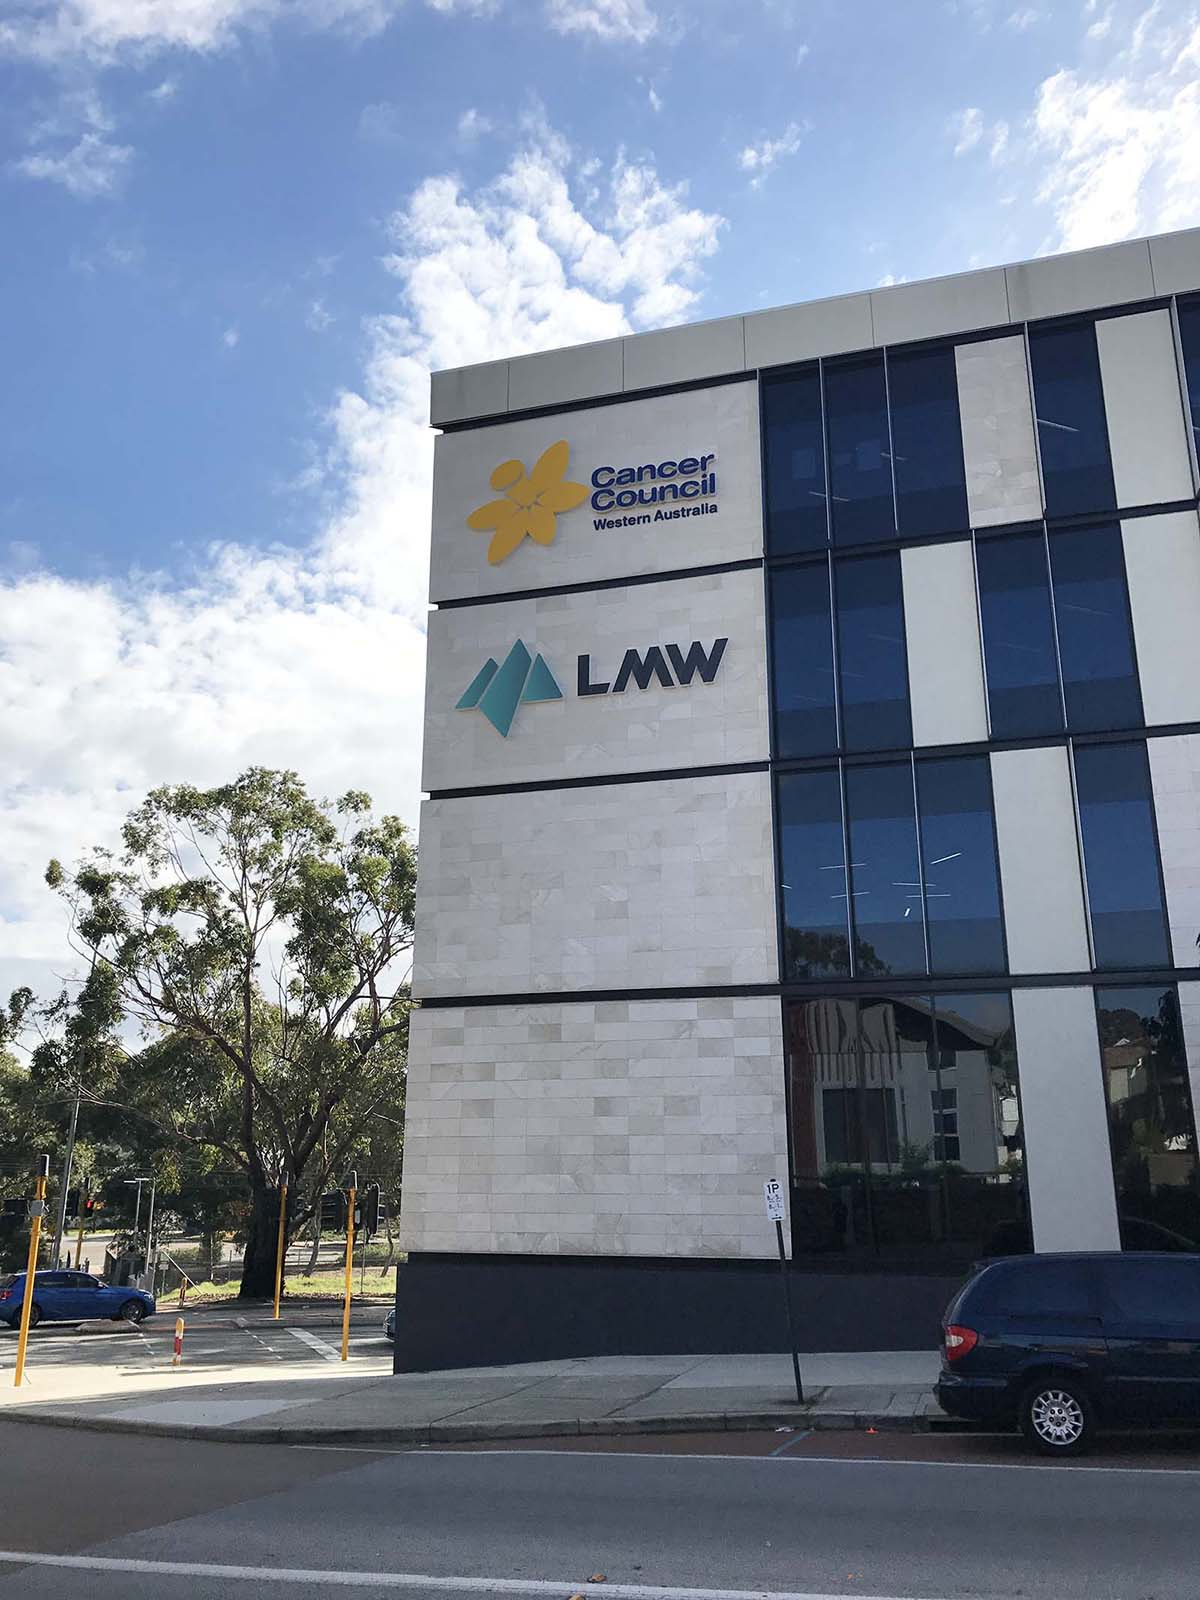 LMW building signage by Compac